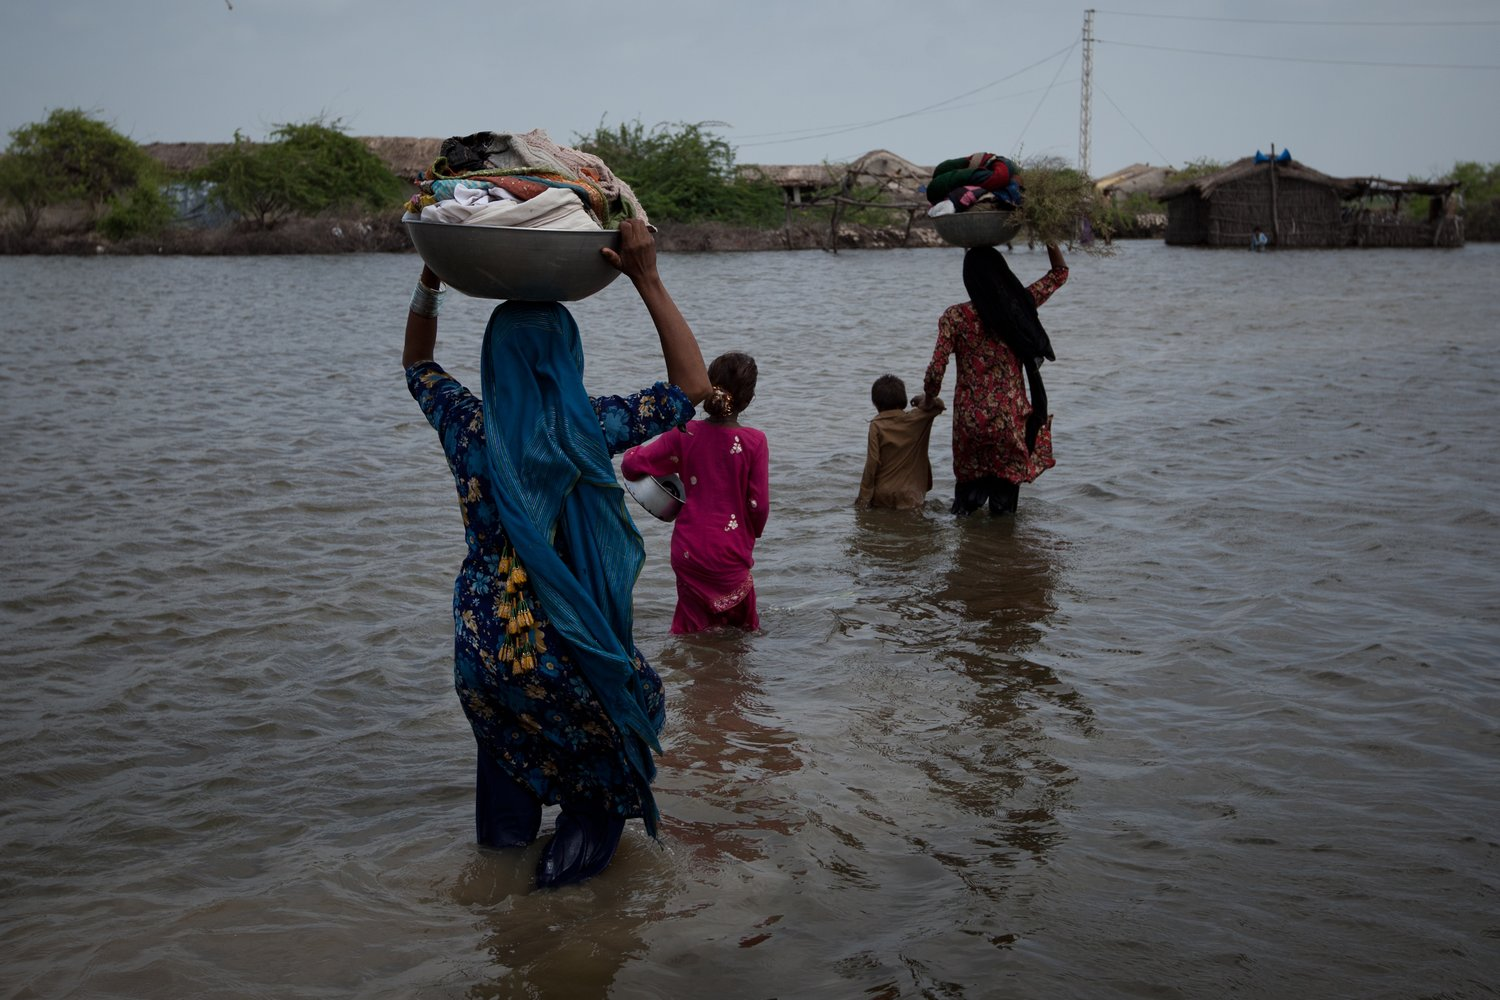 Residents carry their belongings back to their flooded village in the Badin district of Pakistan's Sindh province, on September 14, 2011